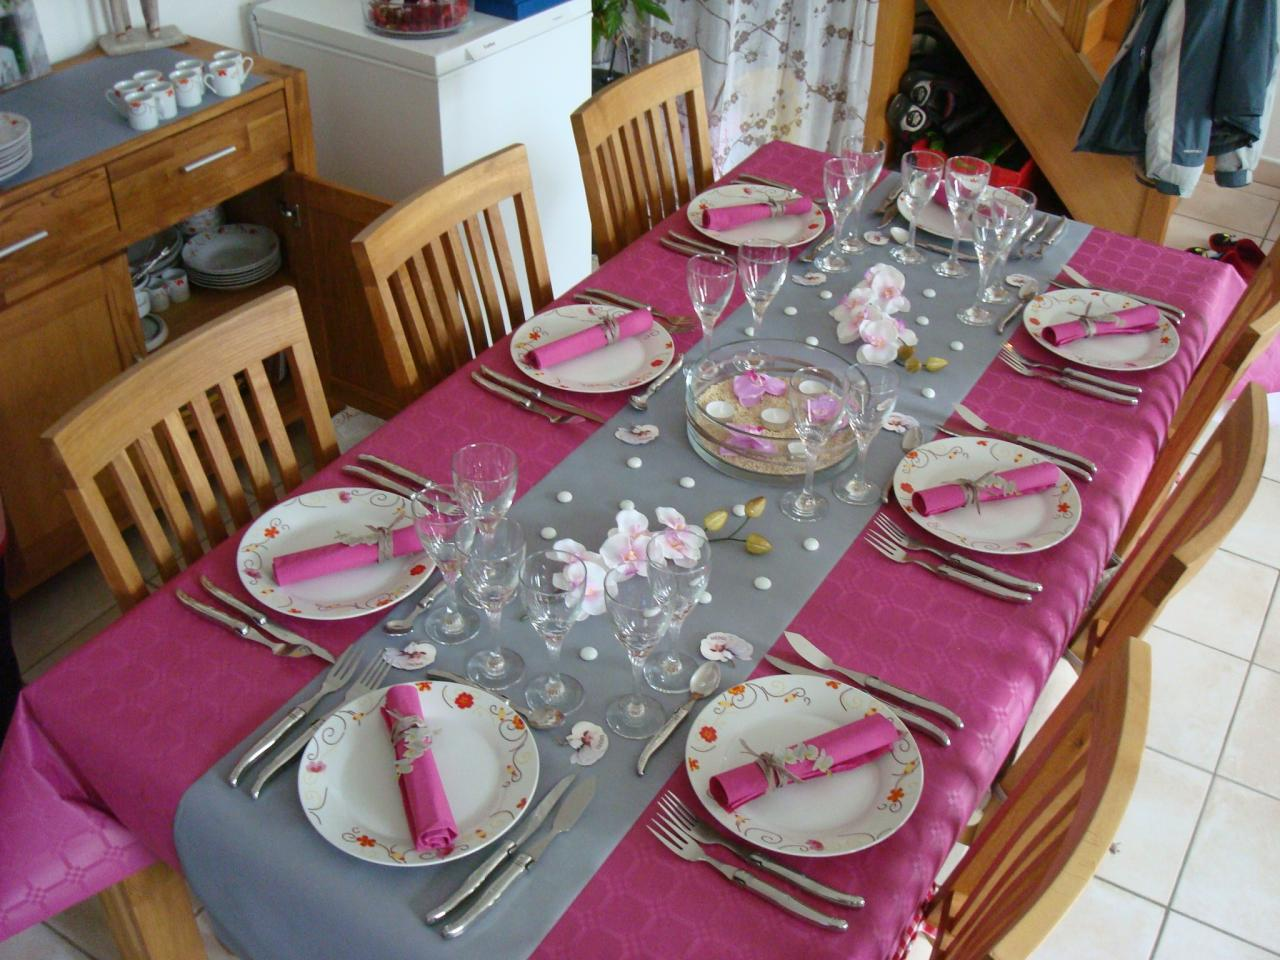 Photos bild galeria d coration table anniversaire - Decoration de table idees ...